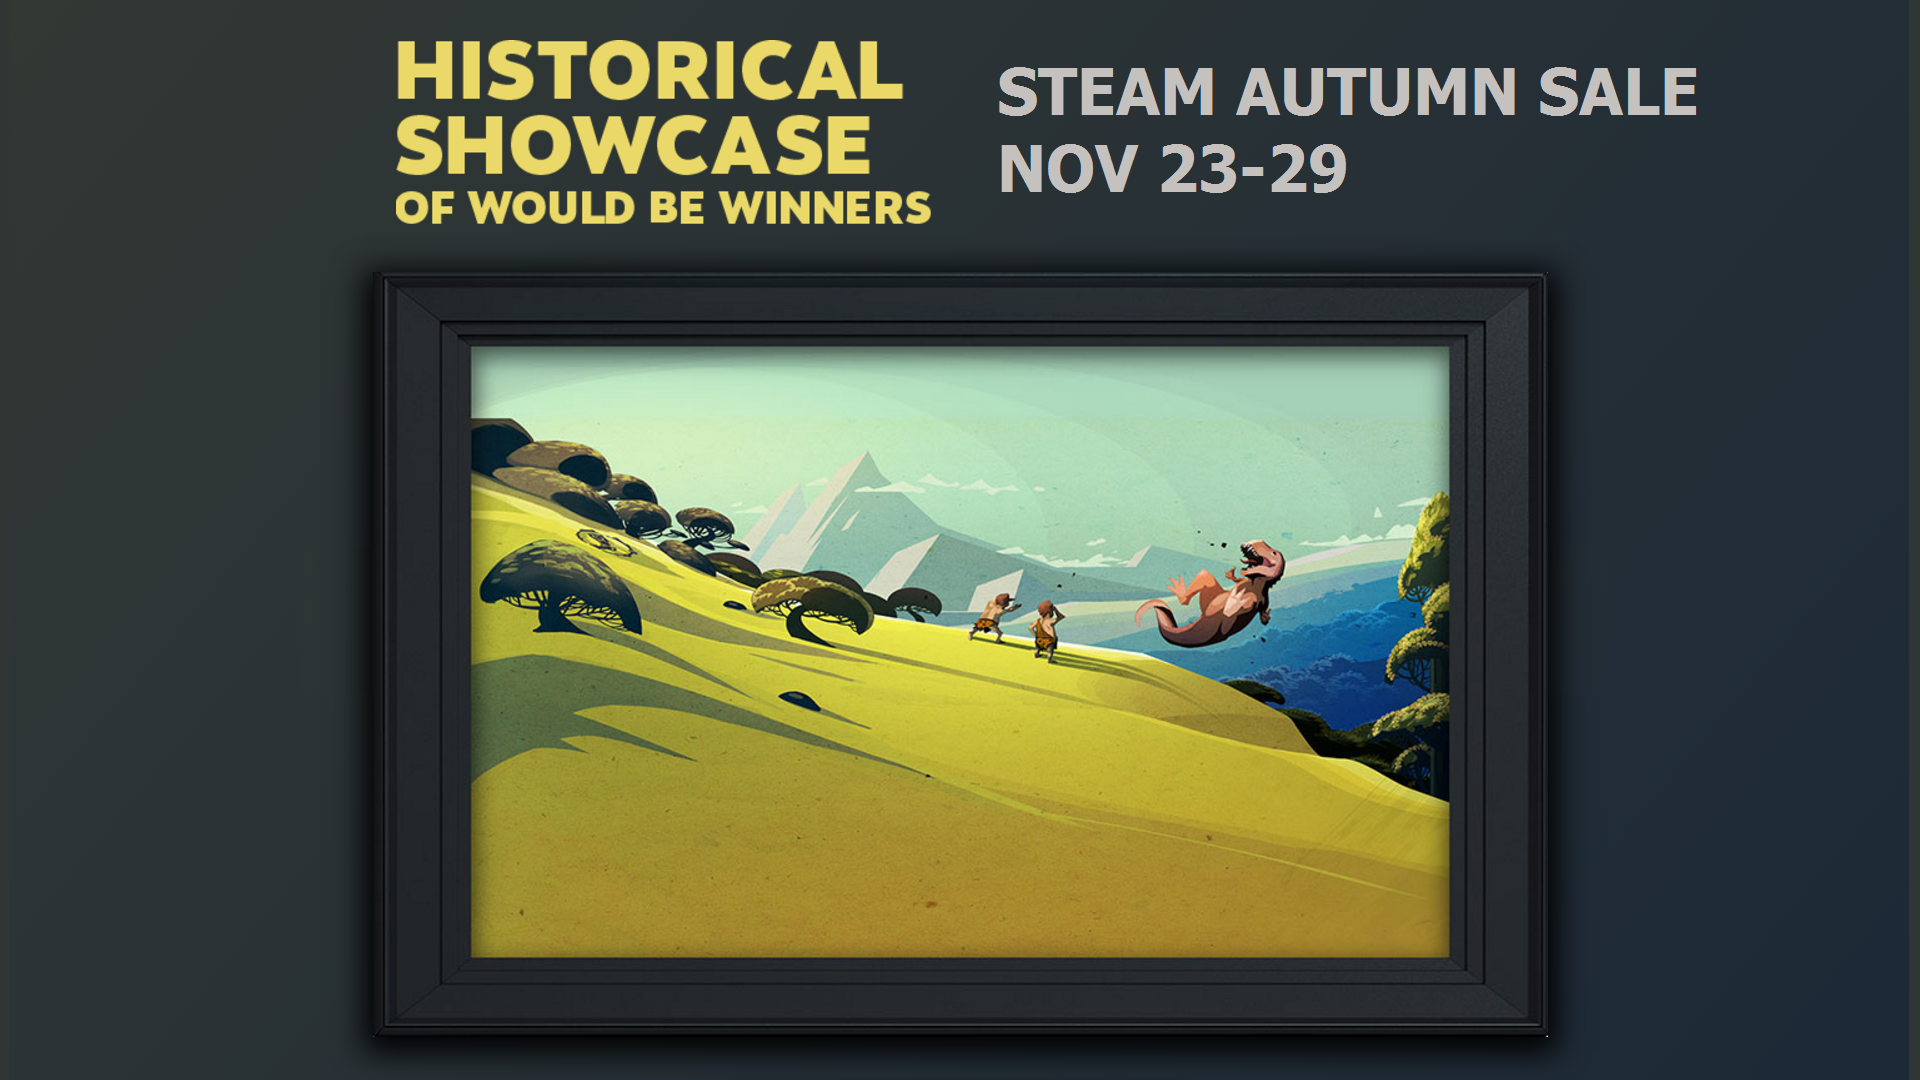 Steam Autumn Sales And Nominations for Steam Awards Have Begun - http://techraptor.net/content/steam-autumn-sales-nominations-steam-awards-begun | Gaming, News